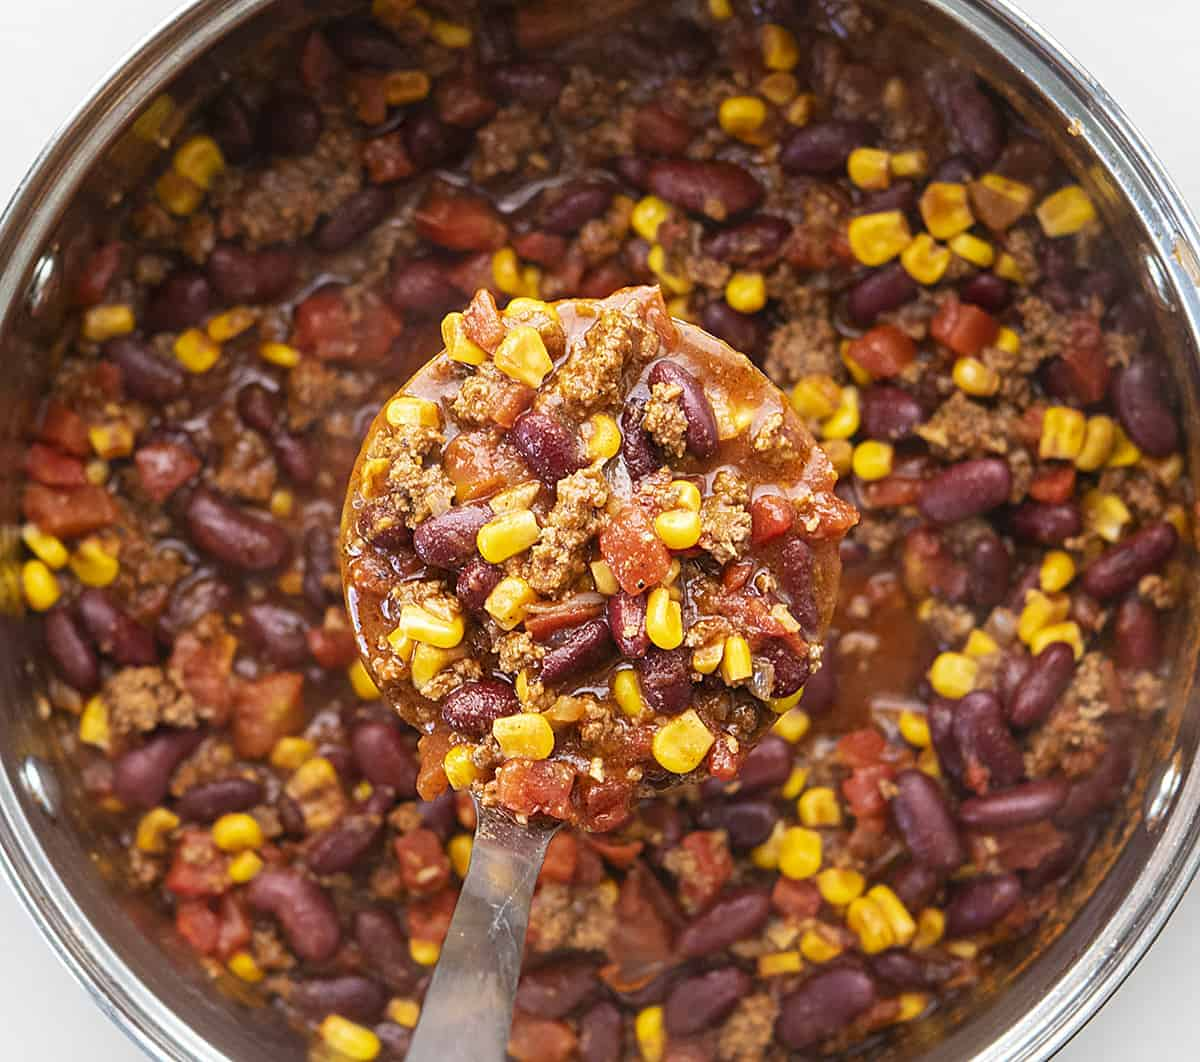 Spoonful of Chili for Chili Macaroni and Cheese Recipe